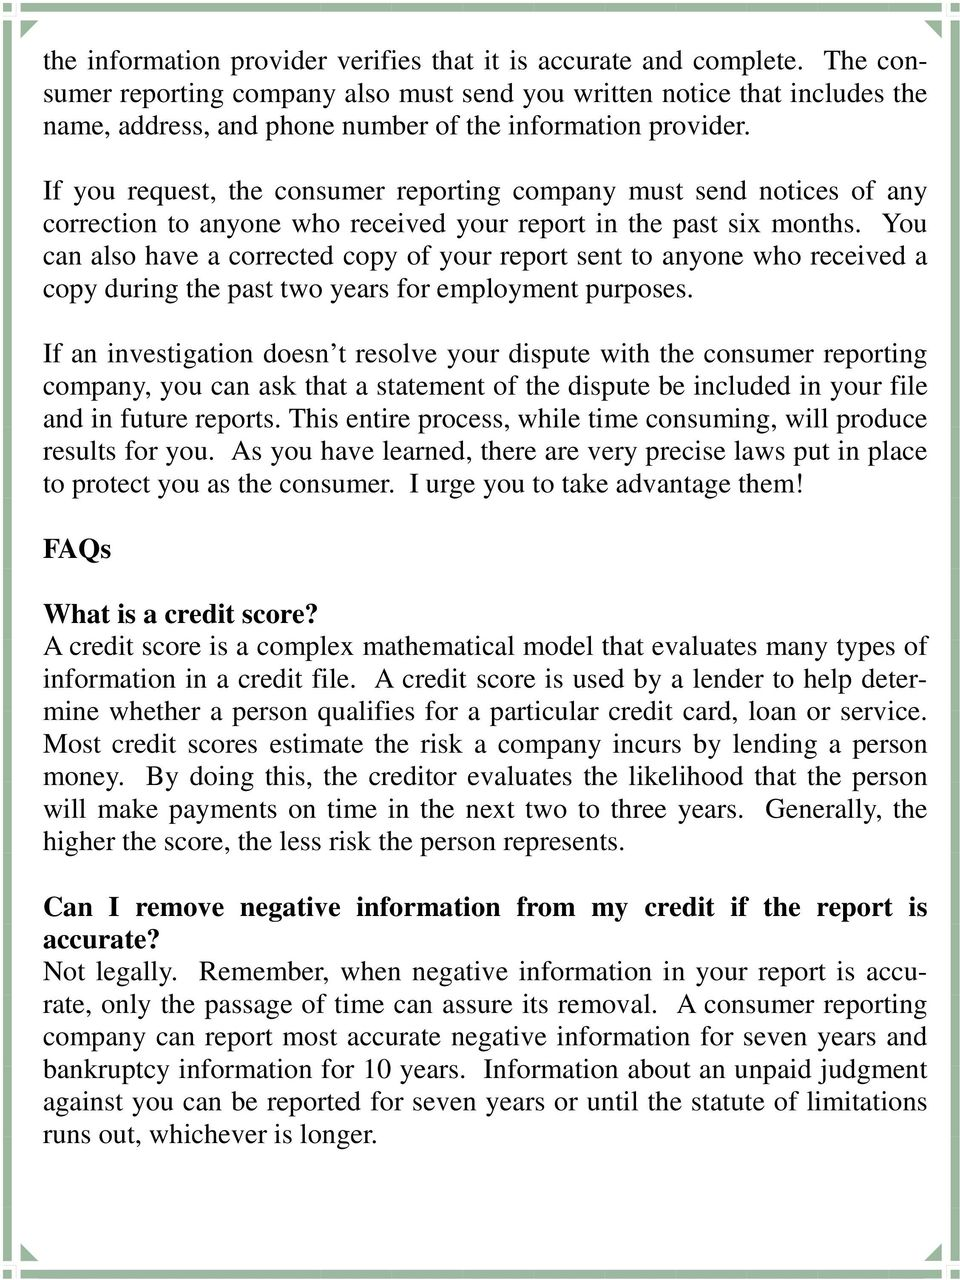 If you request, the consumer reporting company must send notices of any correction to anyone who received your report in the past six months.